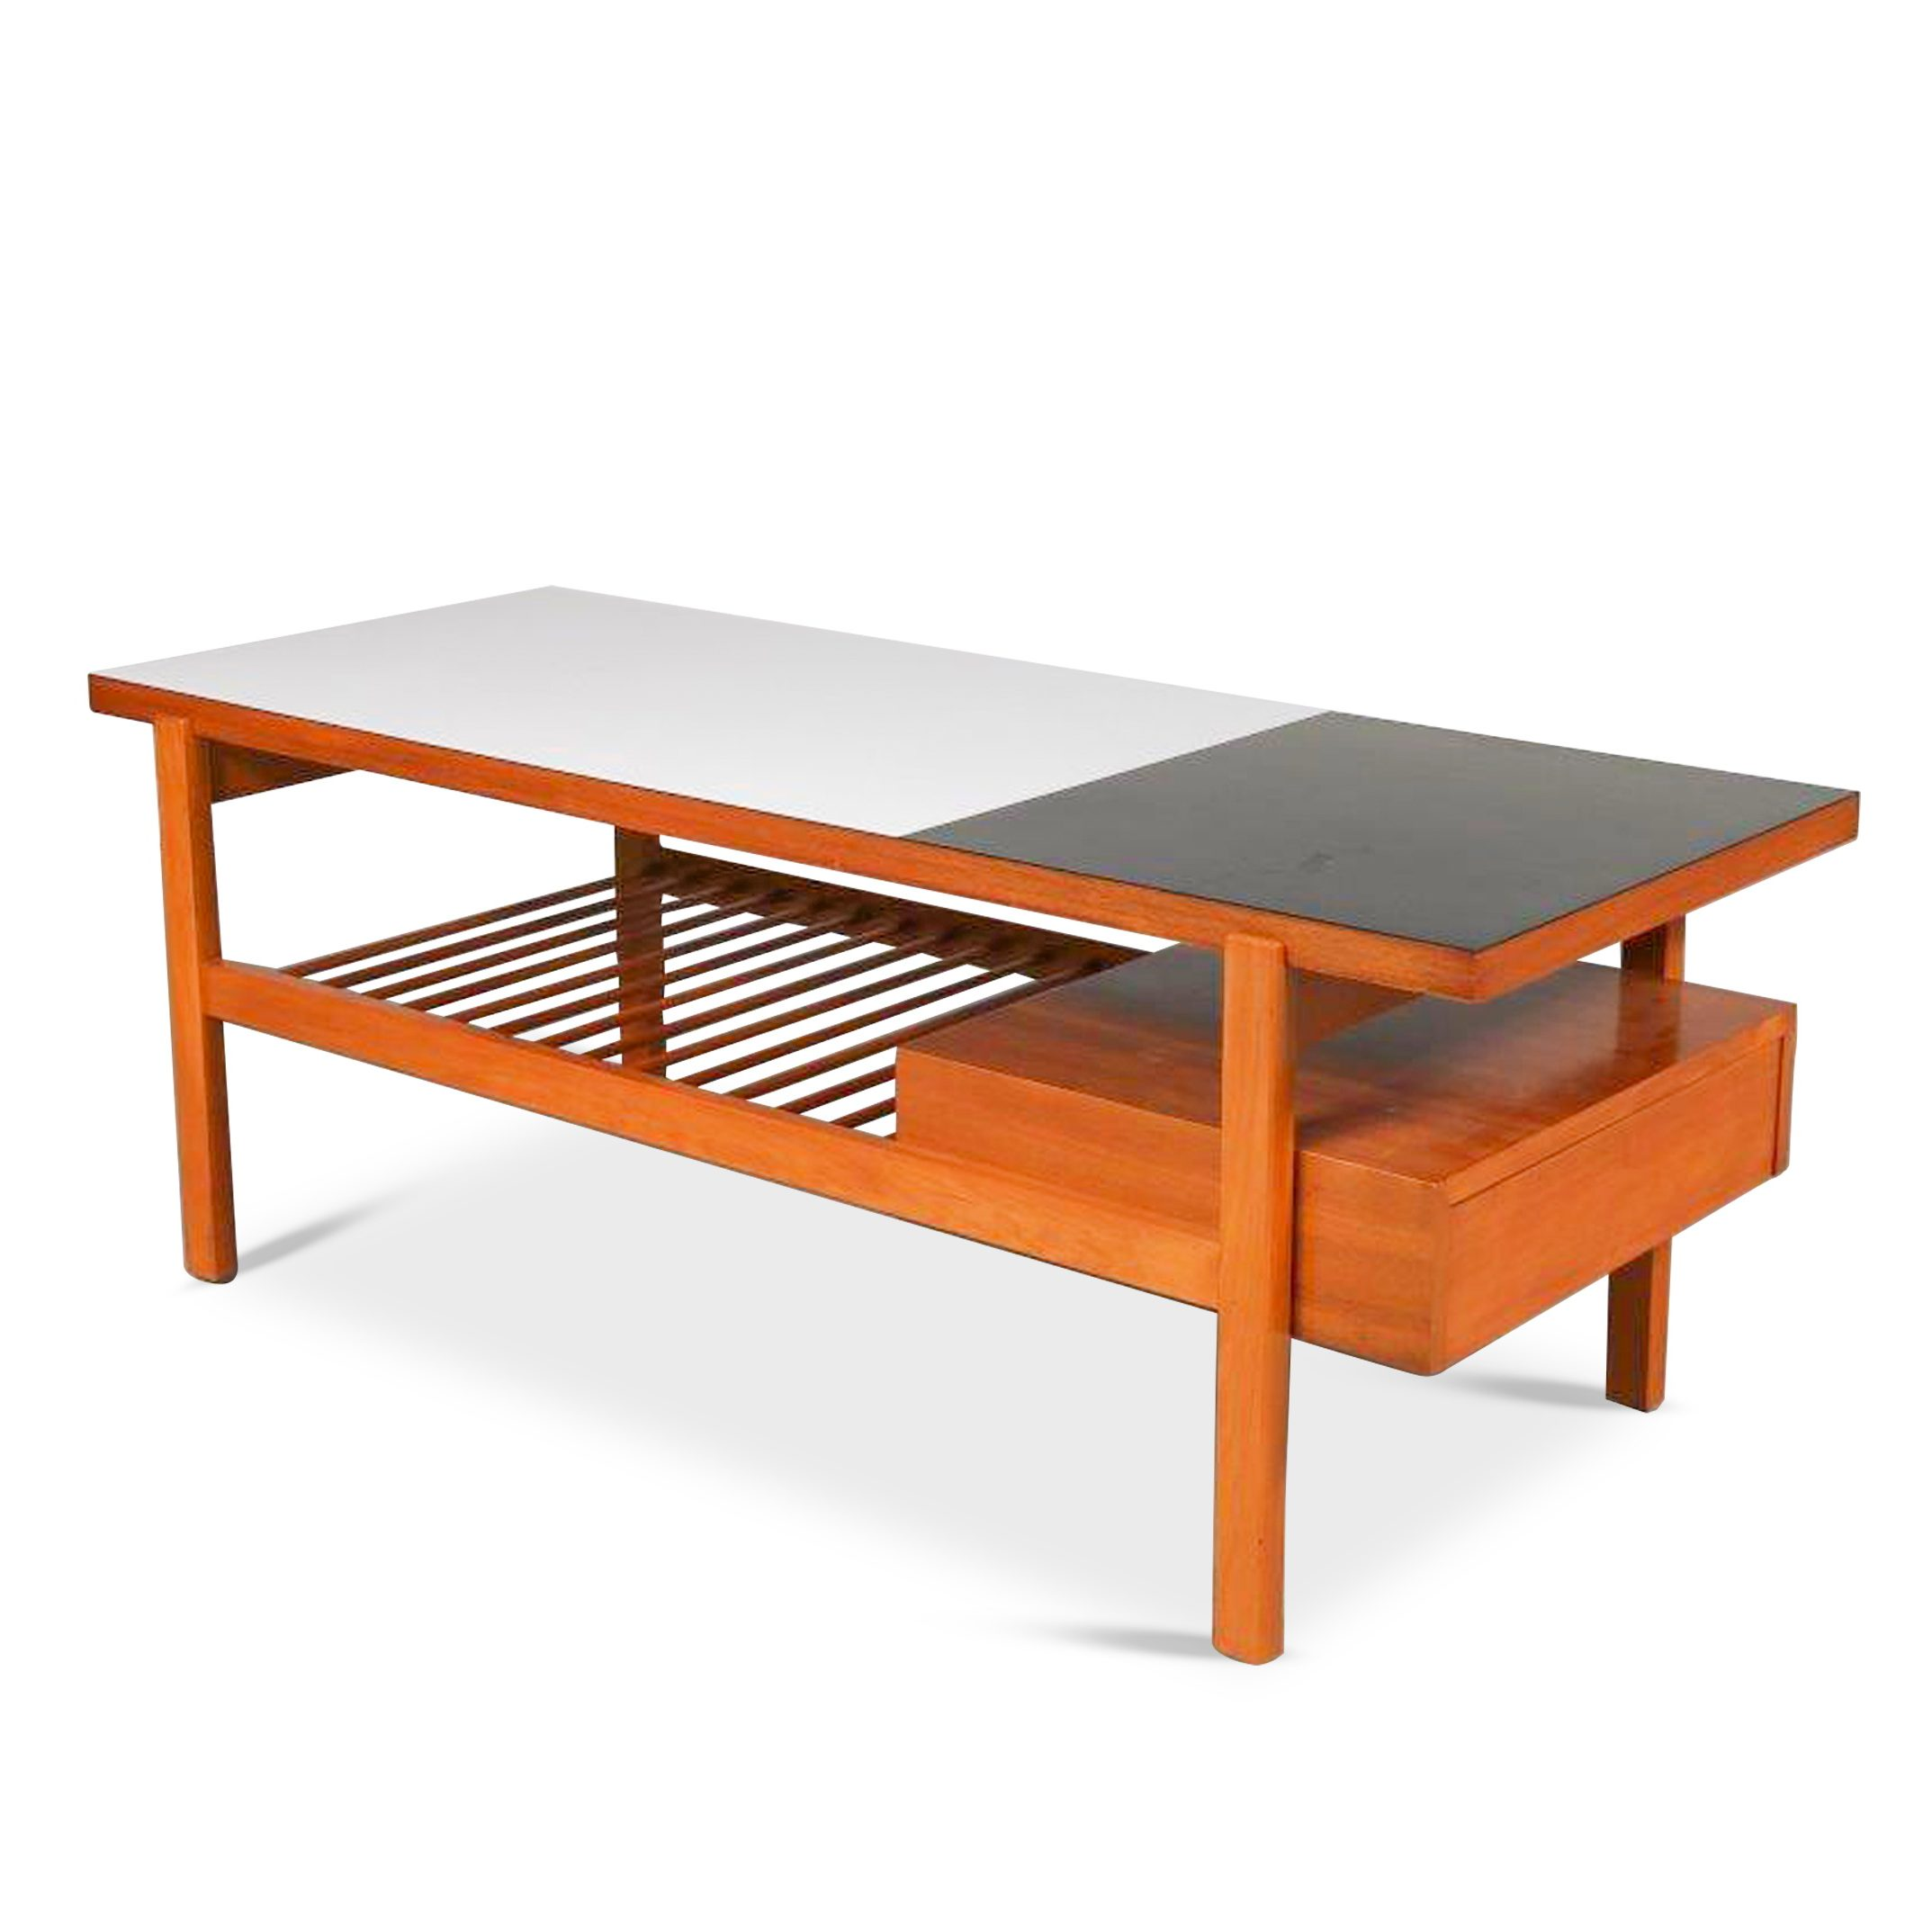 m23656 Jos de Mey Coffee Table for Van Den Berghe – Pauvers, Belgium 1950